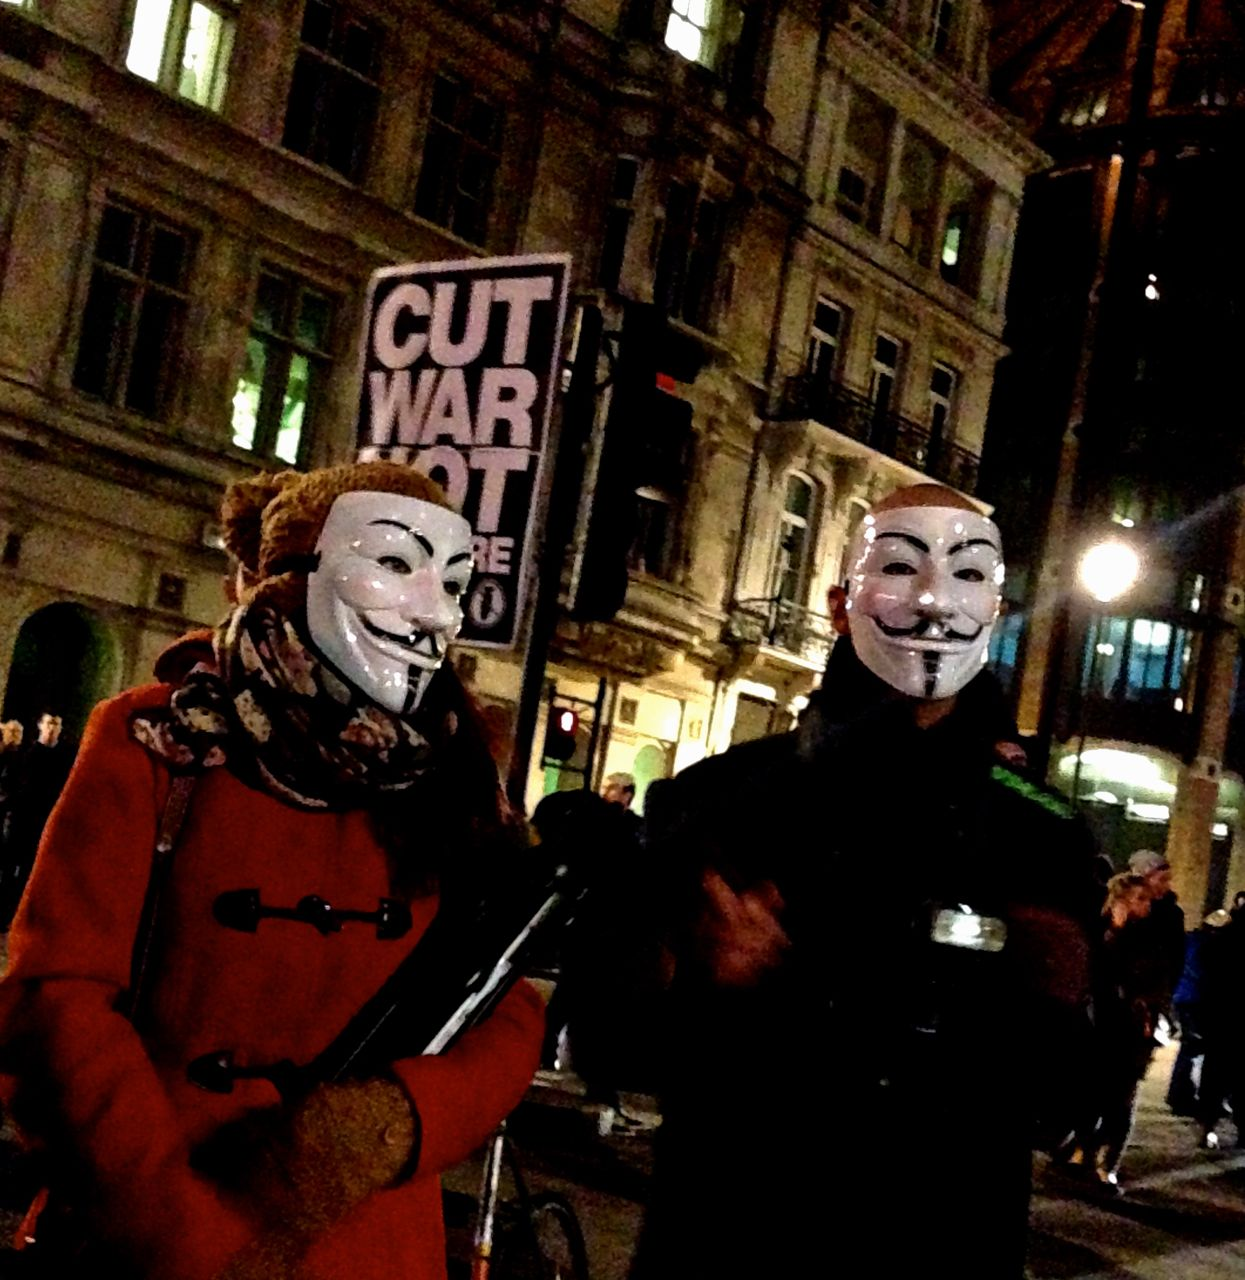 Protestors in masks gather at near Parliament on Nov. 5, 2013